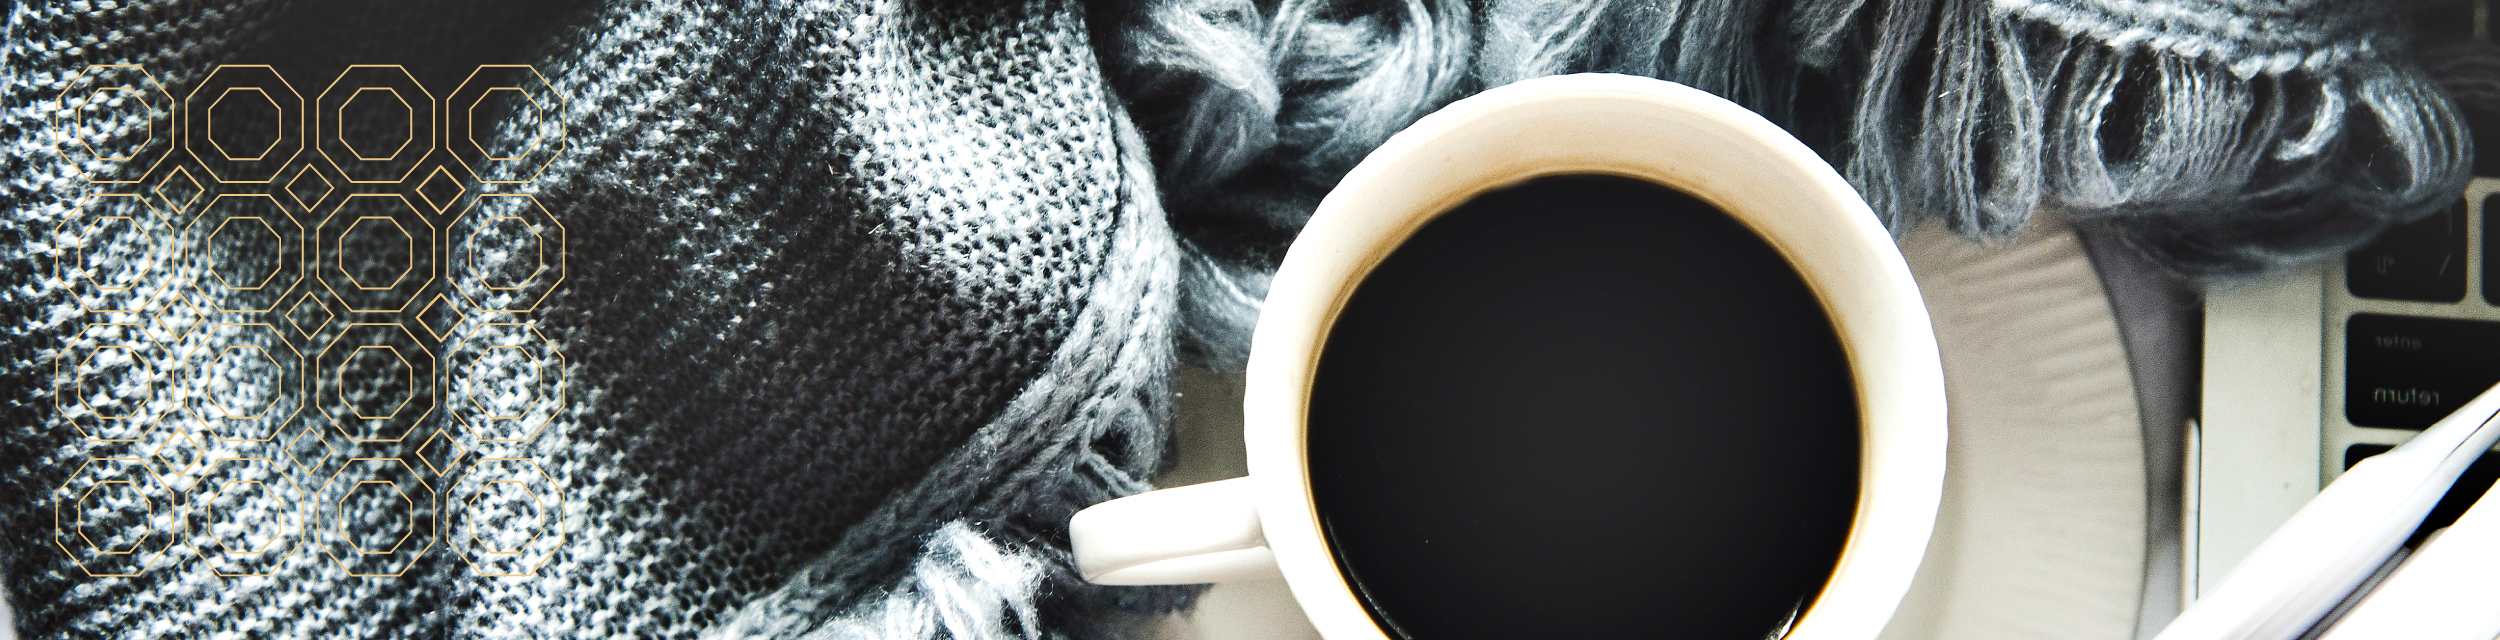 close up of a full coffee cup on saucer surrounded by gray/blue blanket